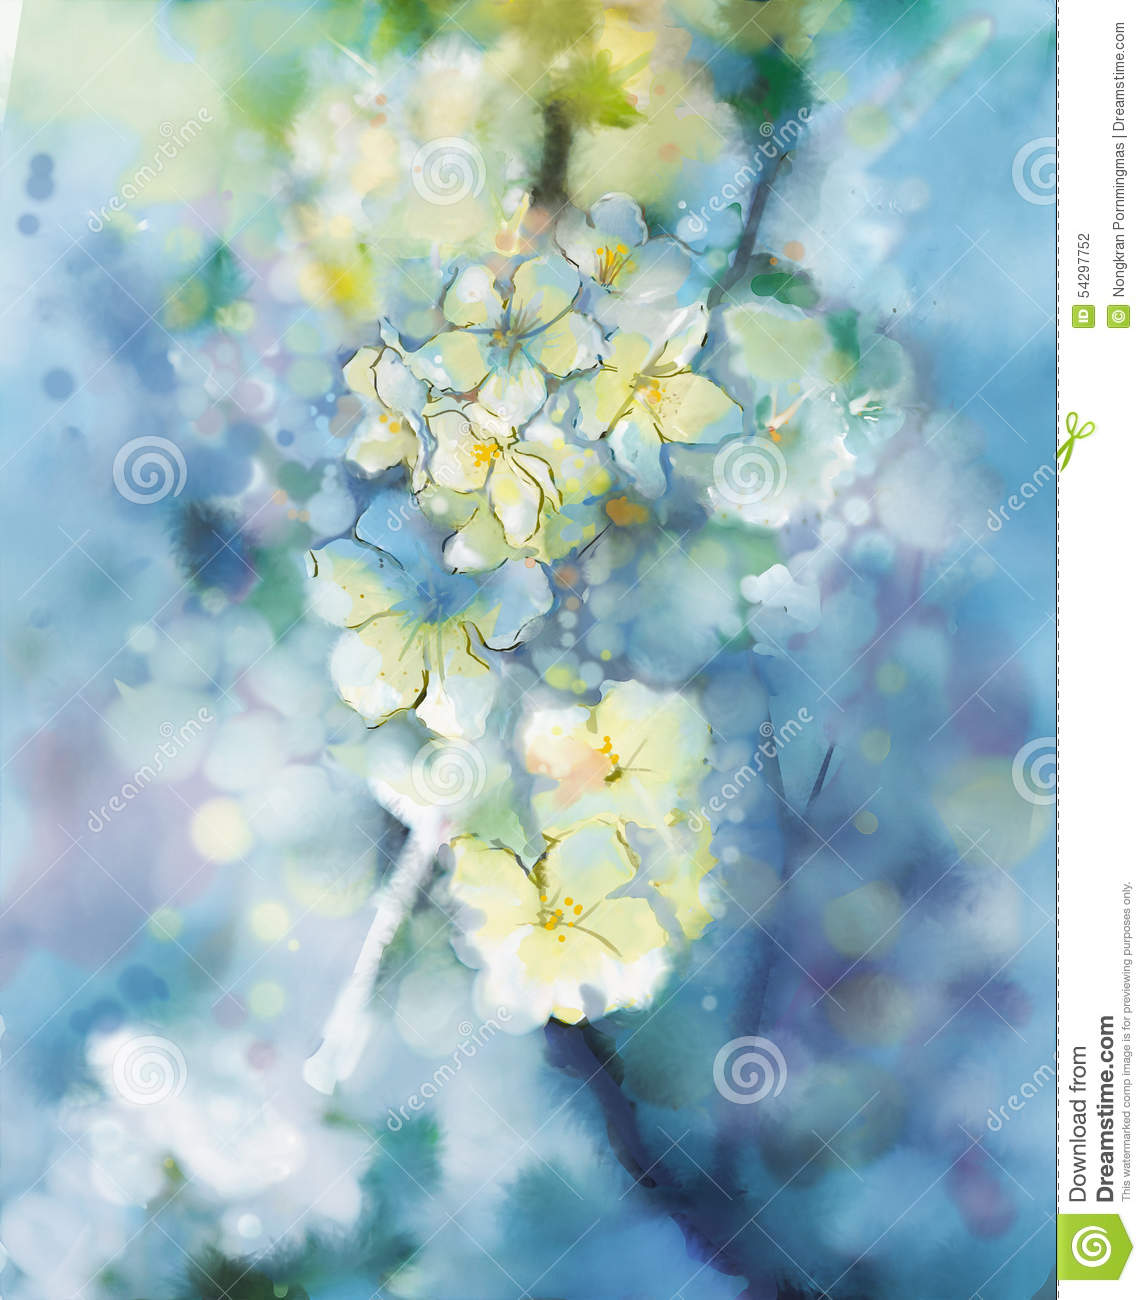 Abstract flower watercolor painting royalty free stock for How to paint abstract with watercolors